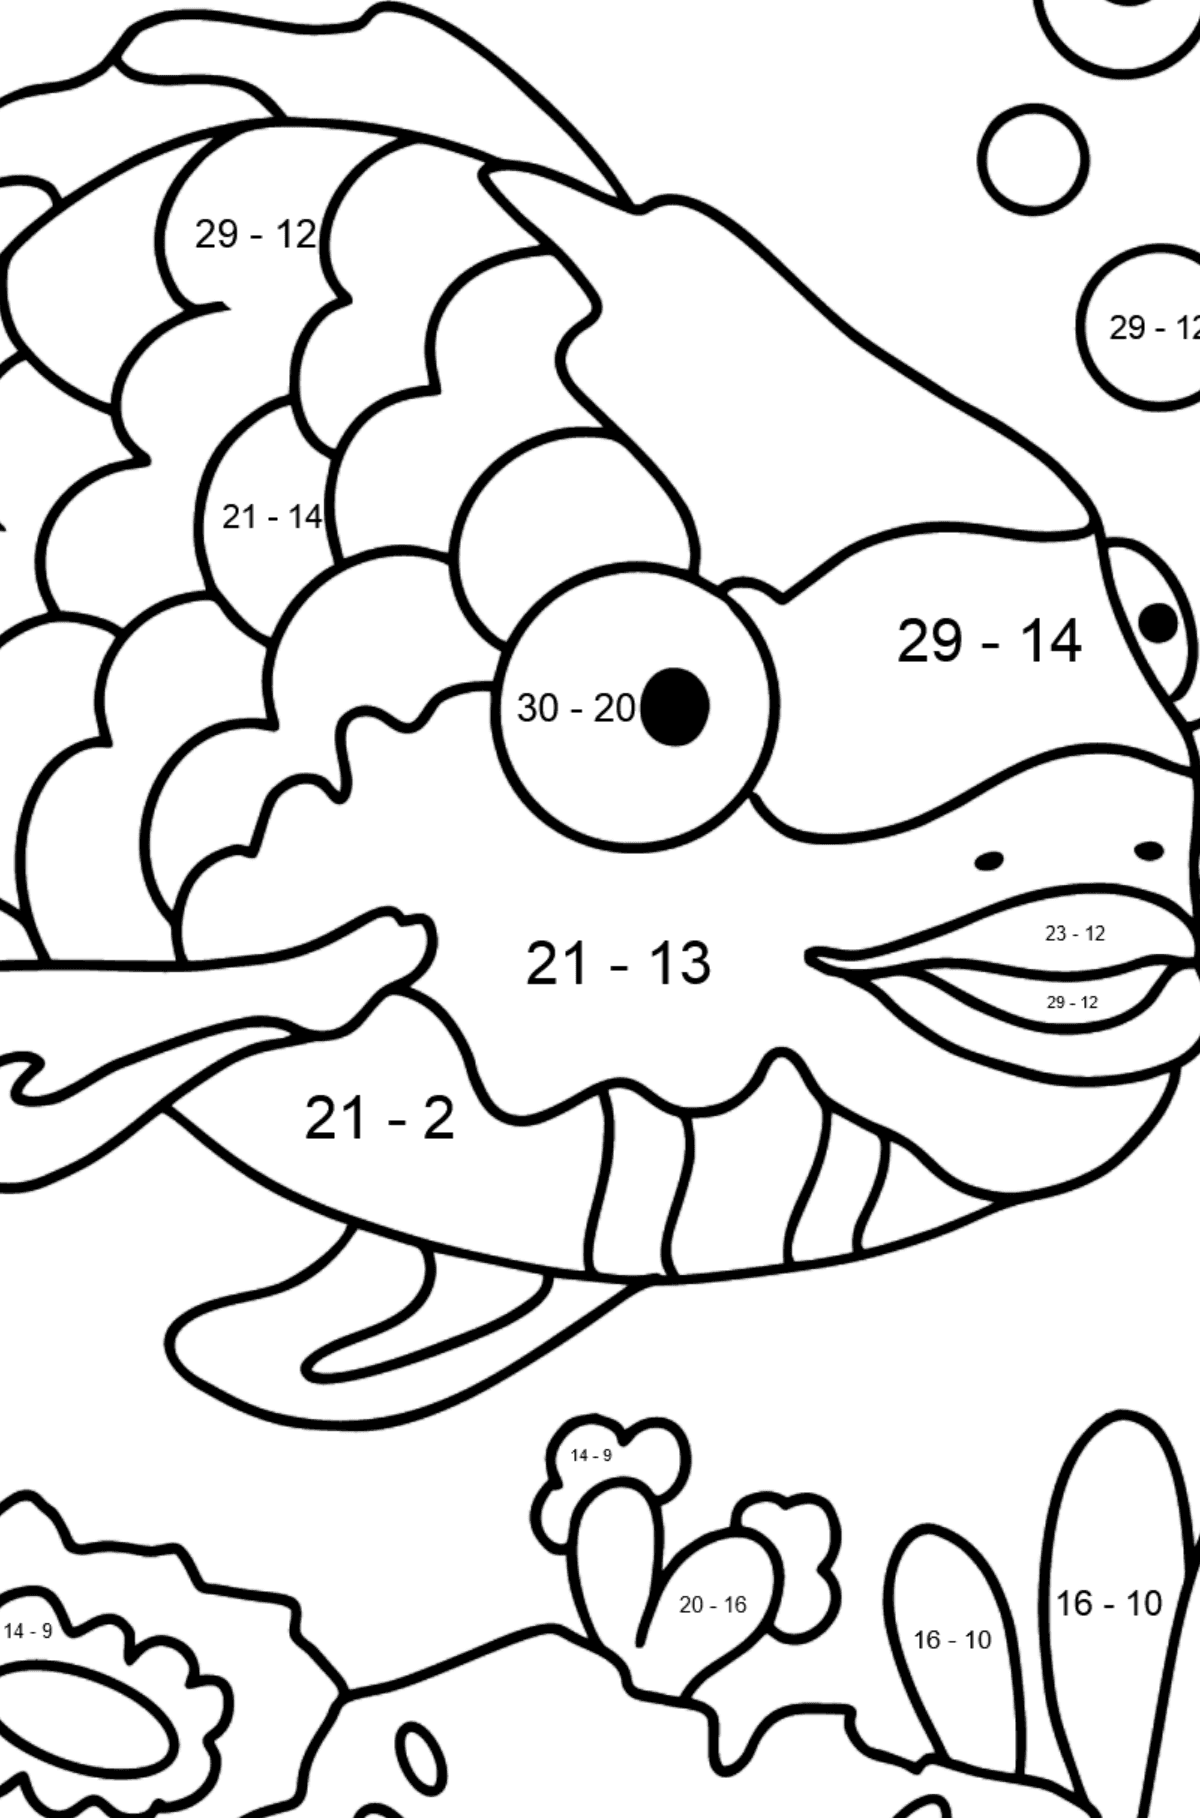 Coloring Page - A Fish with Beautiful Scales - Math Coloring - Subtraction for Kids